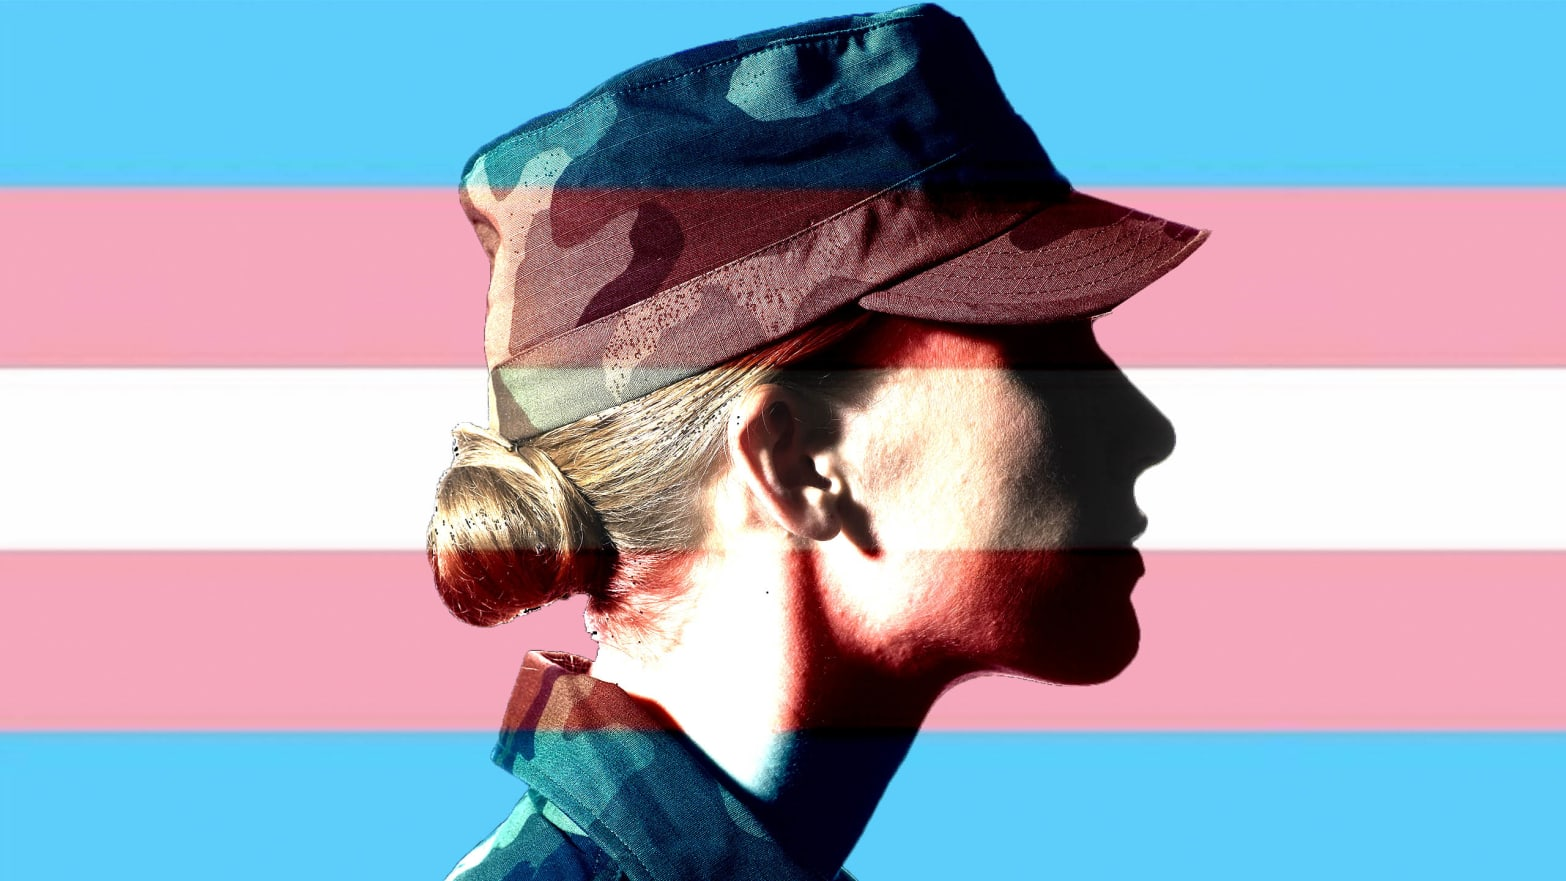 Meet The Transgender Troops Racing To Get a 'Gender Dysphoria' Diagnosis Before April 12